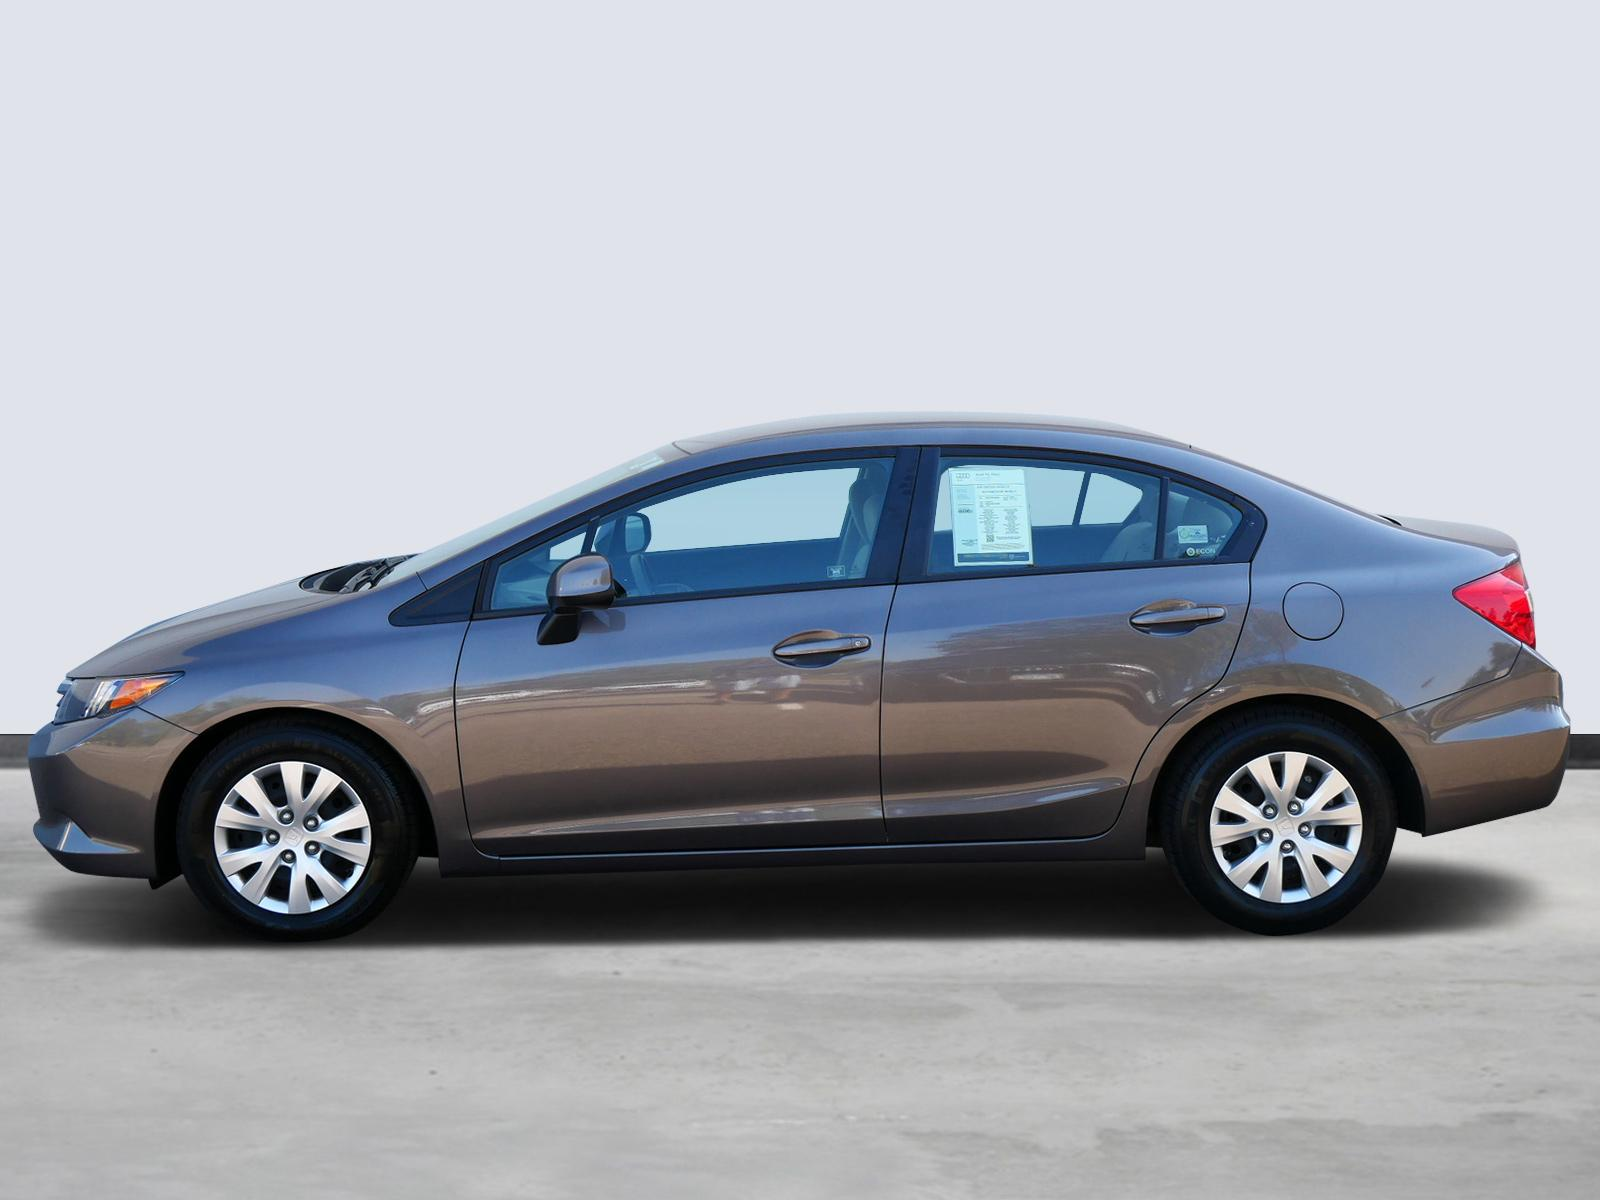 Used 2012 Honda Civic LX with VIN 19XFB2F54CE068302 for sale in Maplewood, Minnesota